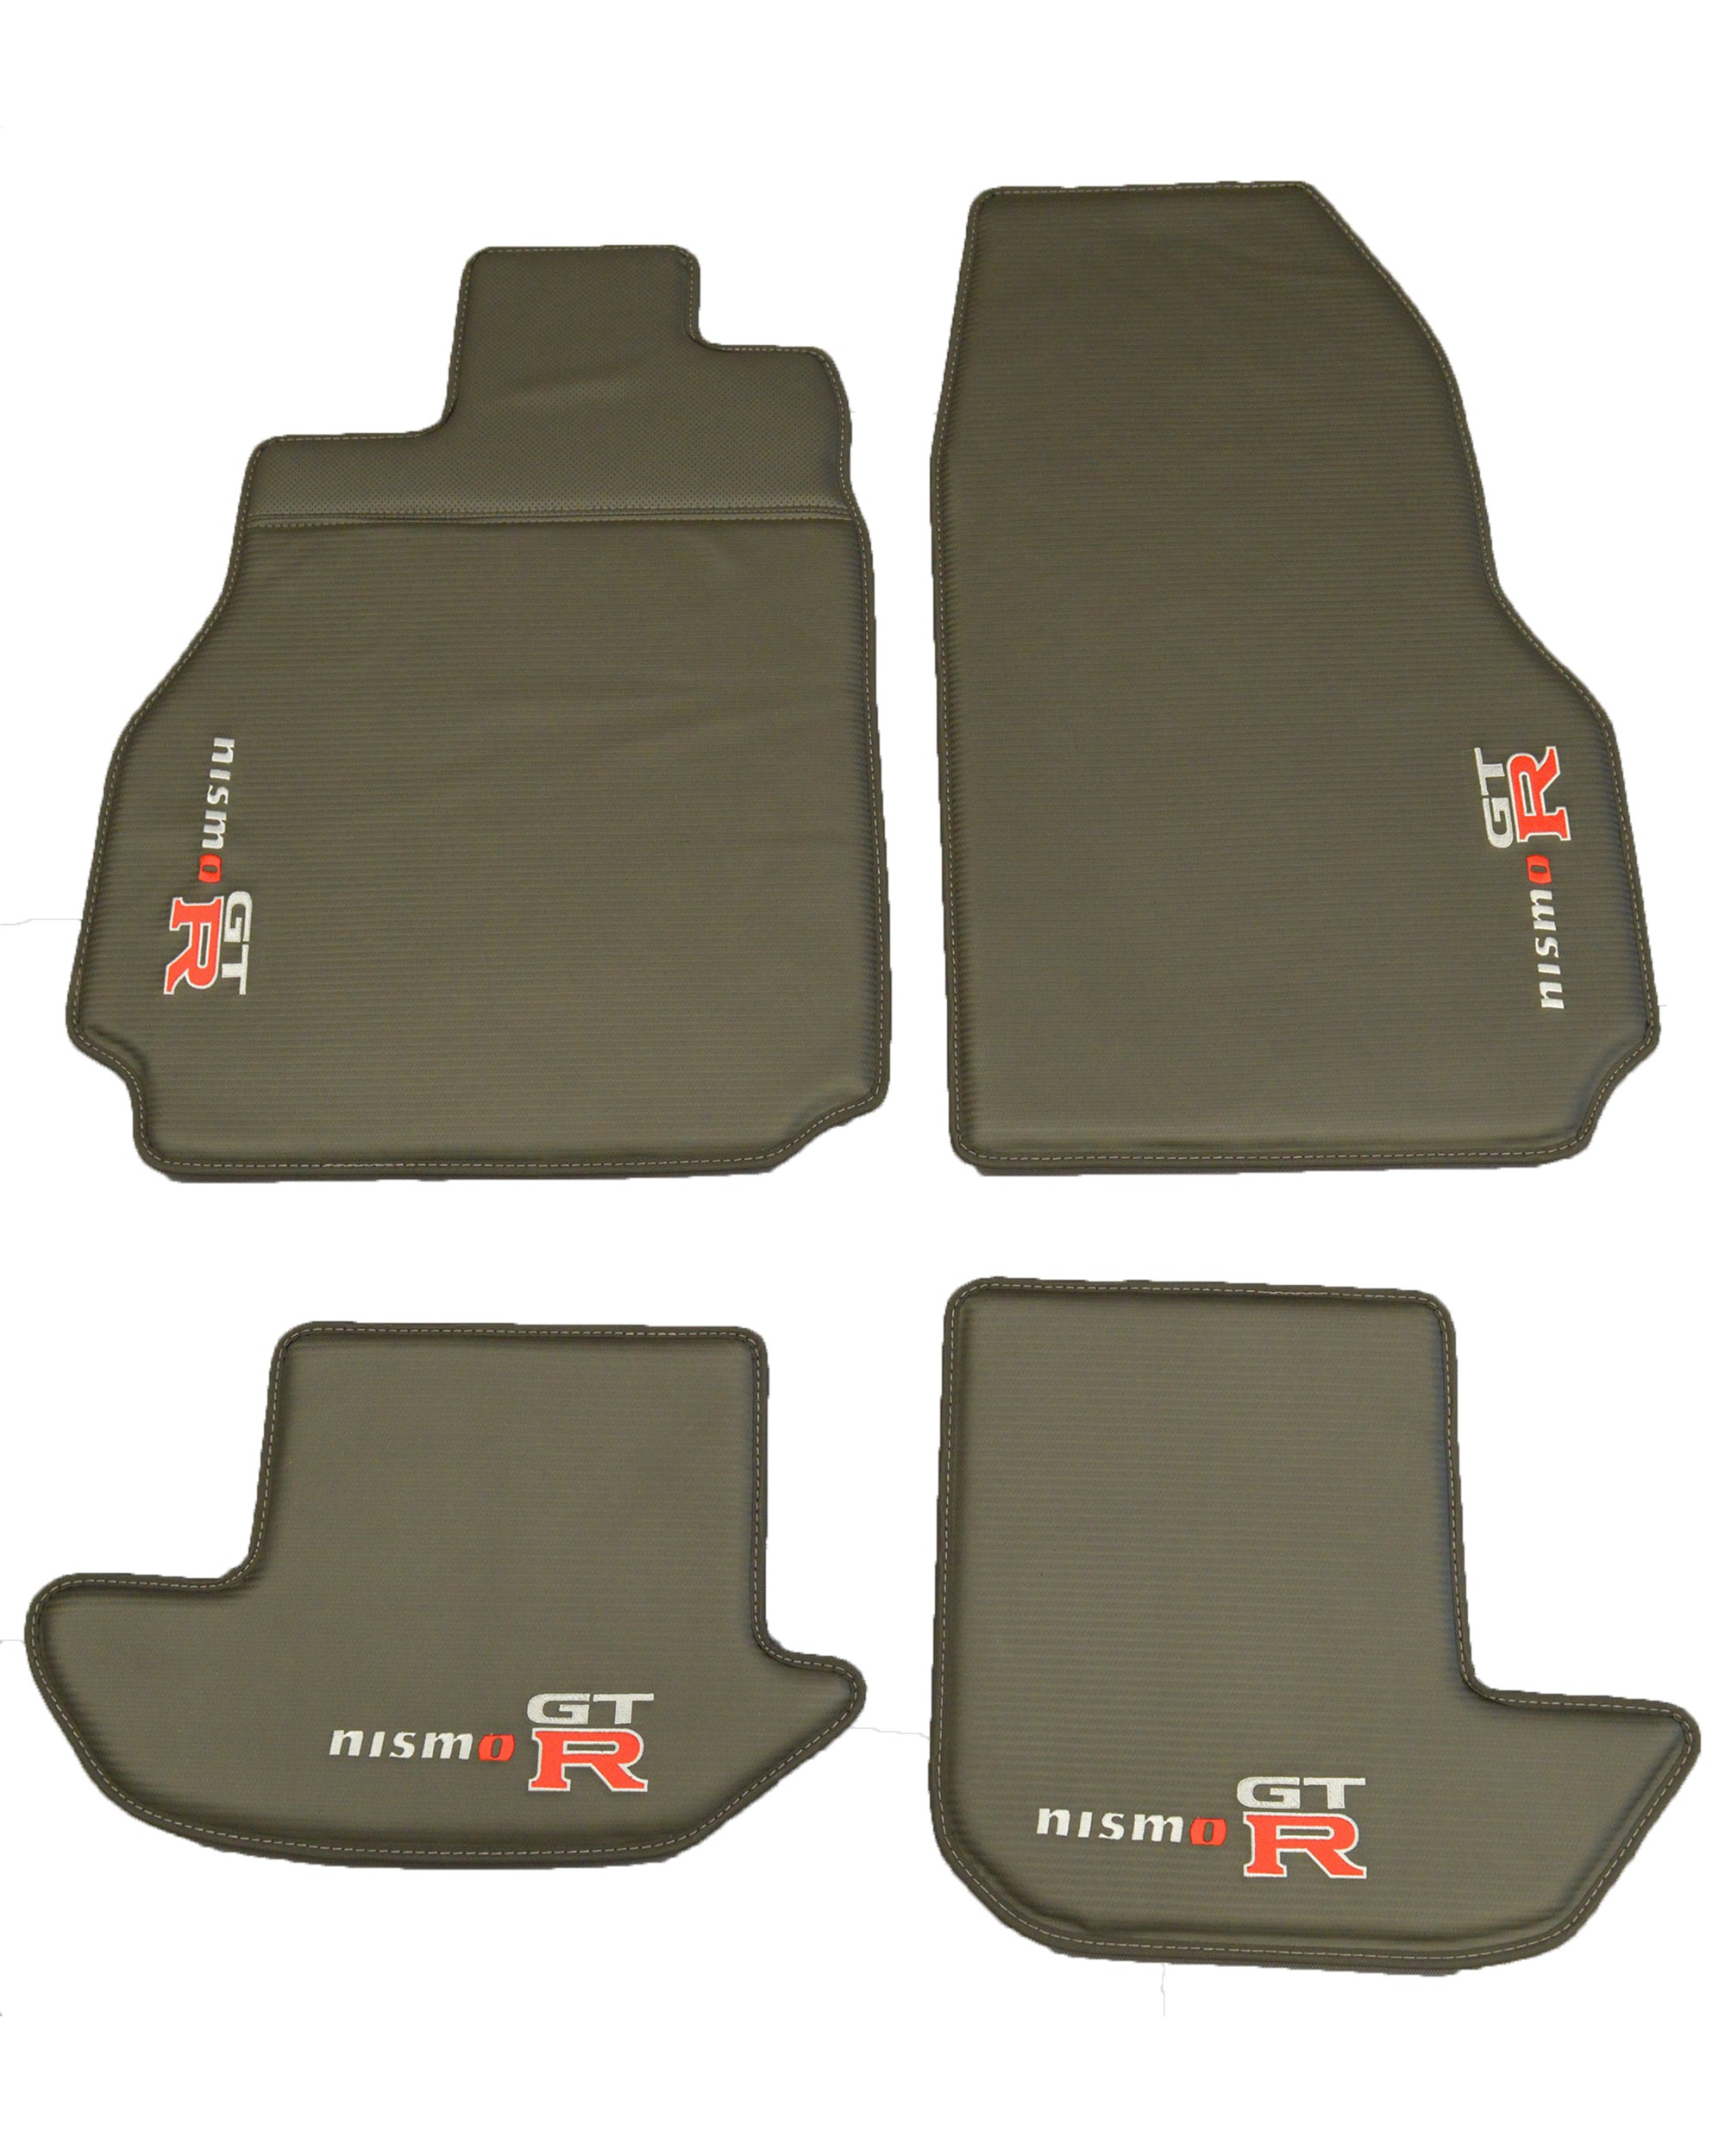 Nissan Juke Nismo Tailored Luxury Floor Mats